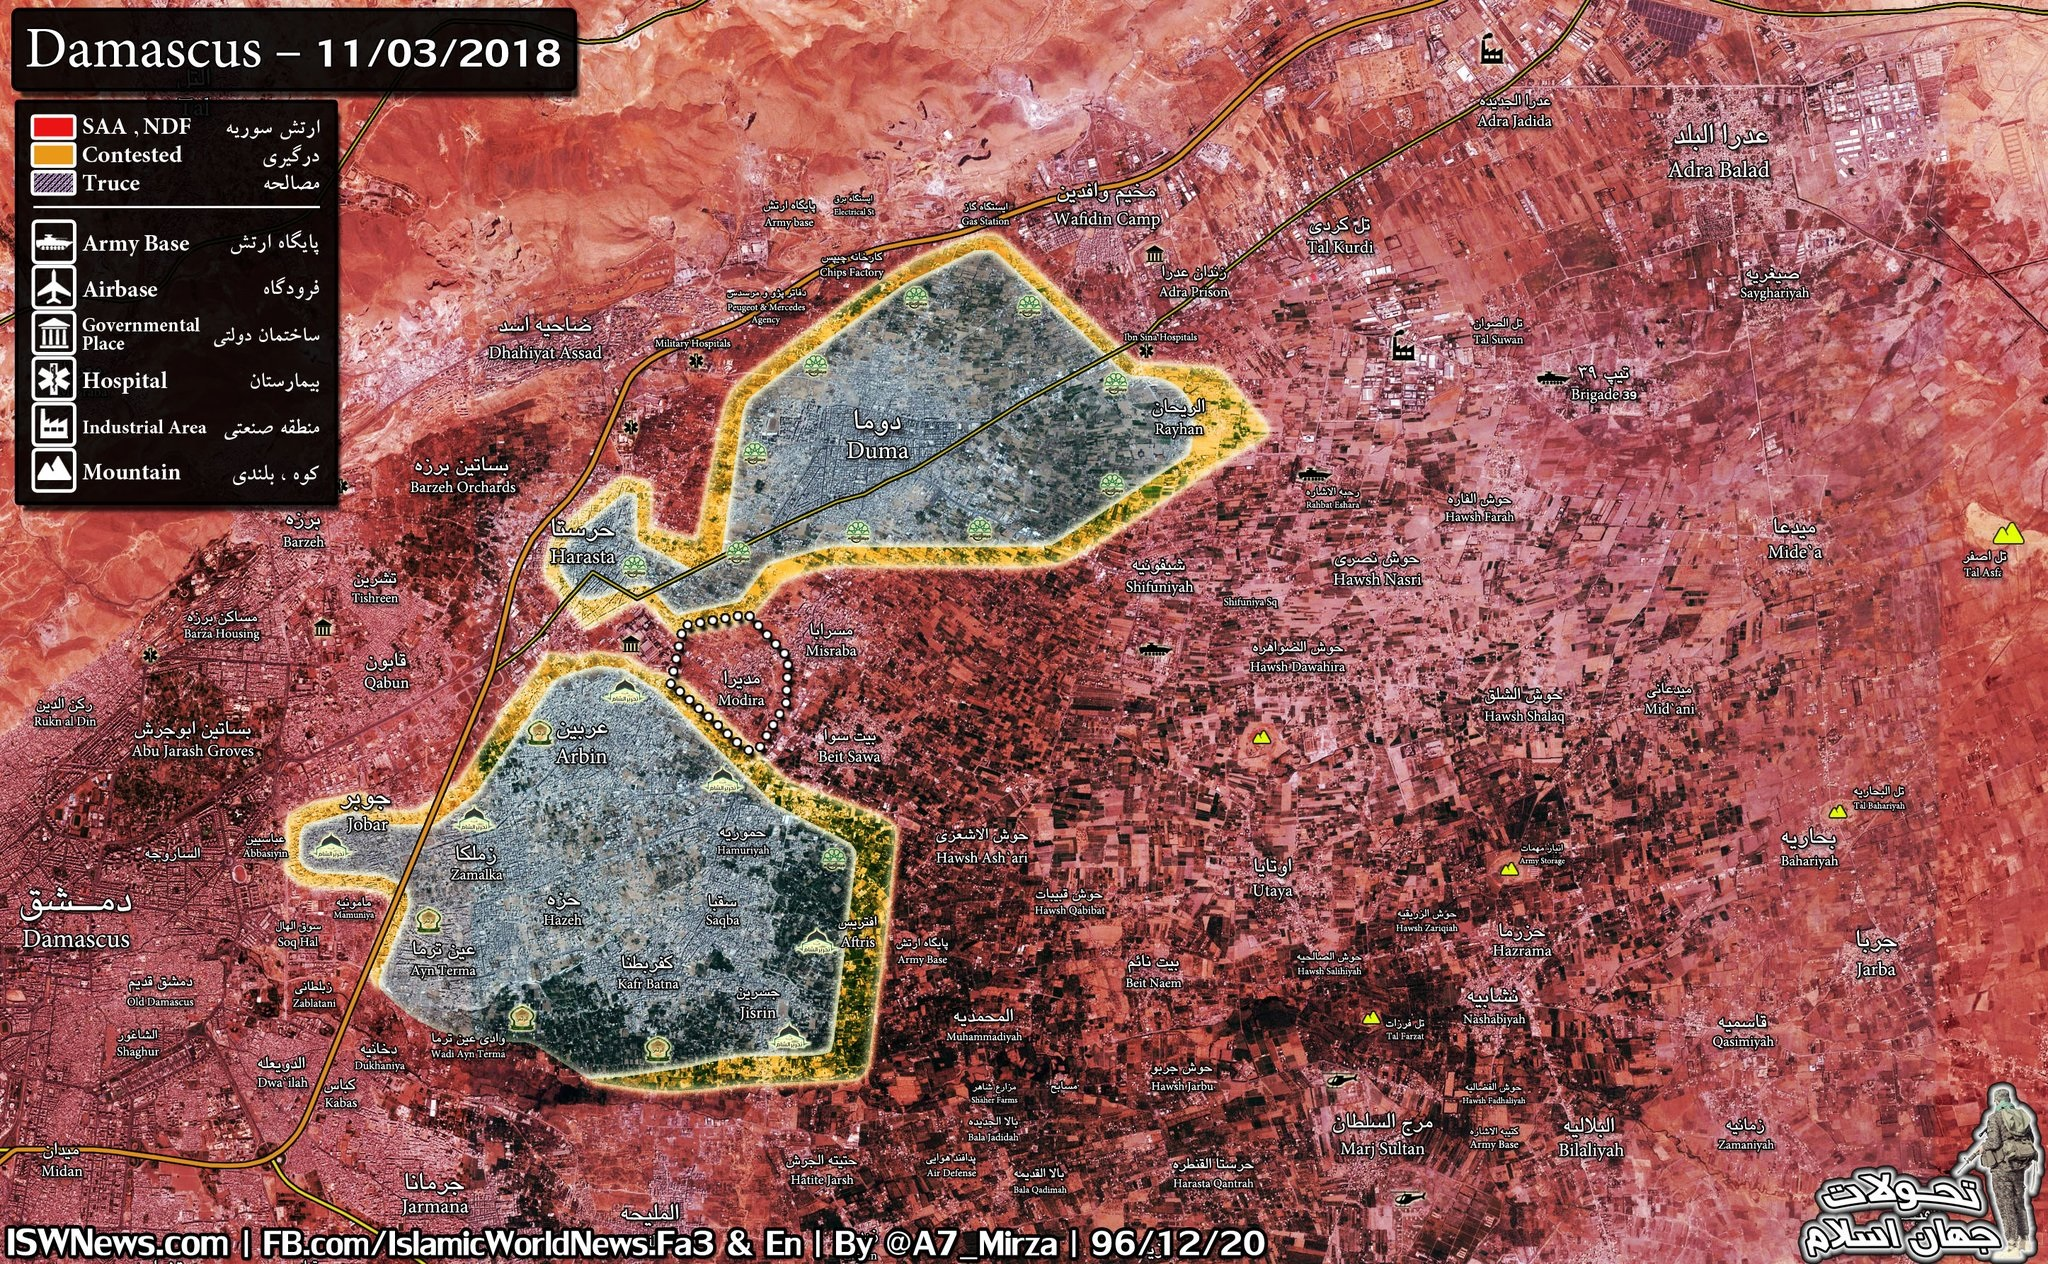 Media Accuses Syrian Army Of Using Chemical Weapons After Militants' Defense Collapses In Eastern Ghouta (Map, Video)